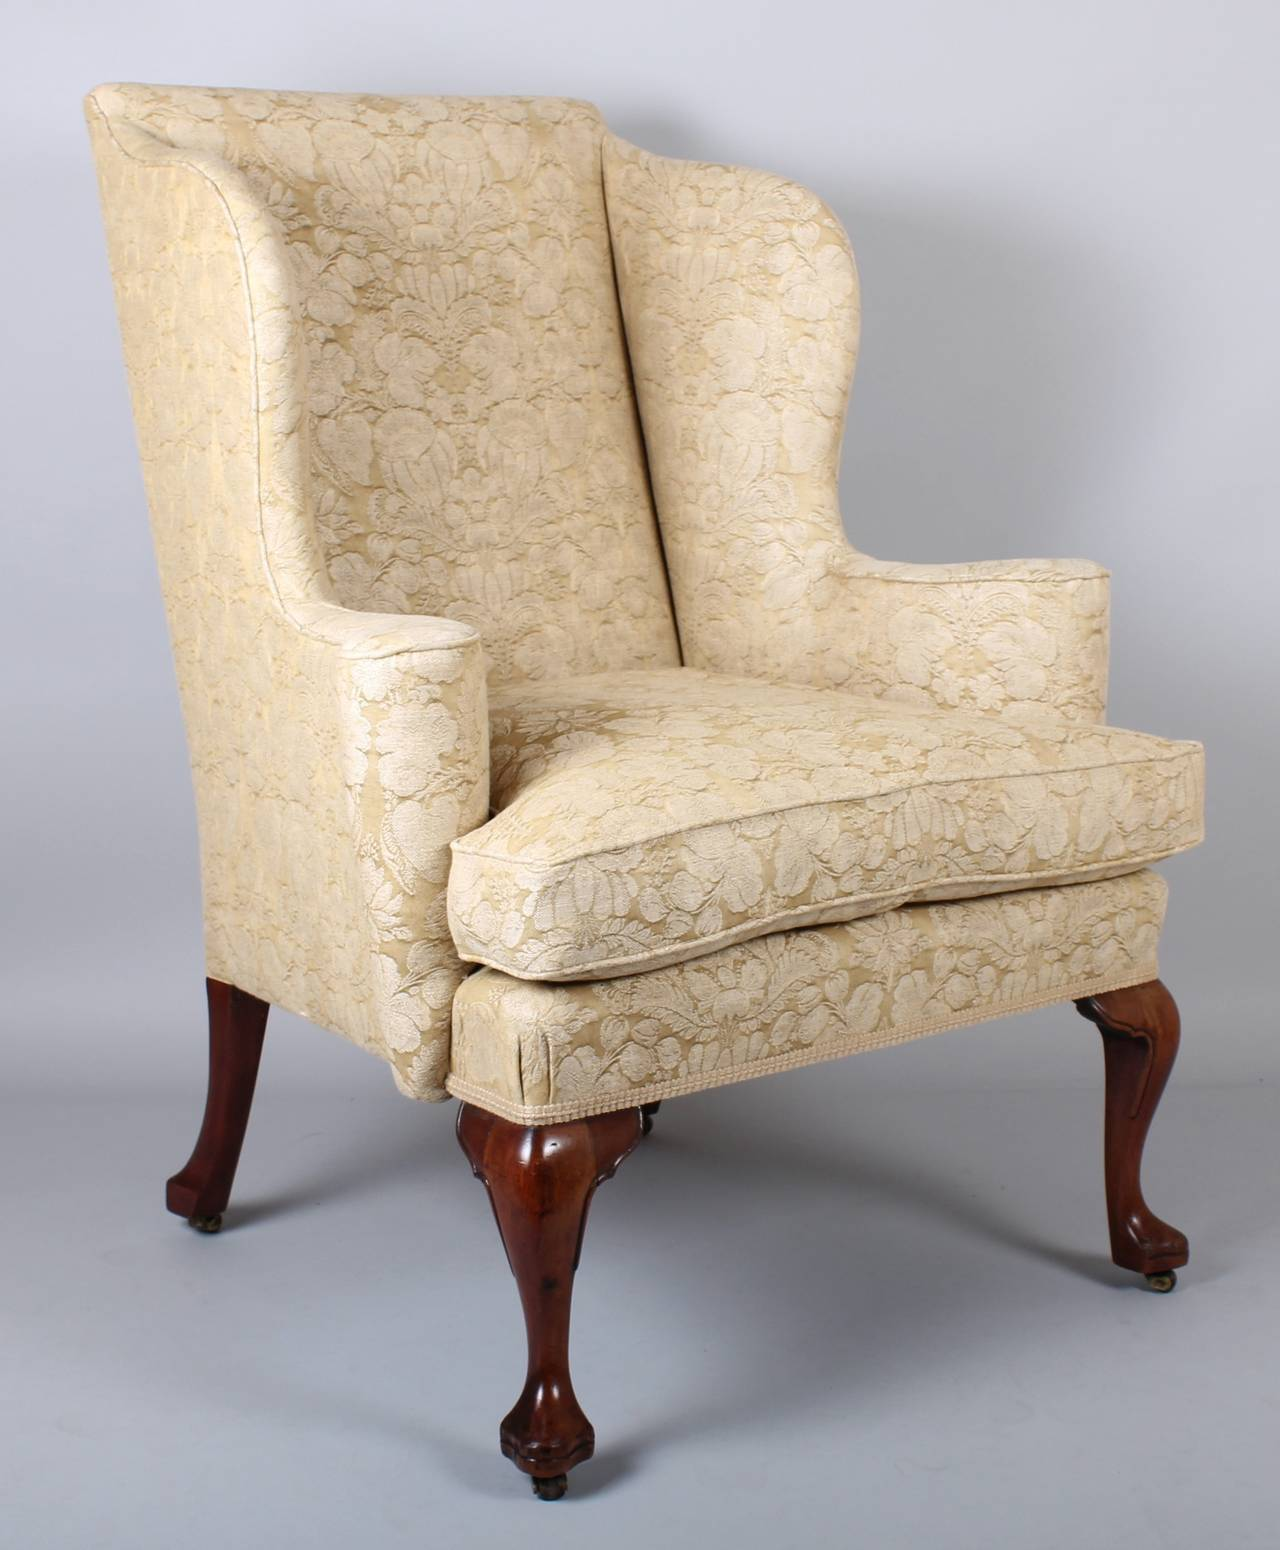 Queen Anne Wingback Chair Wingback Chair On Walnut Cabriole Legs In The Classic